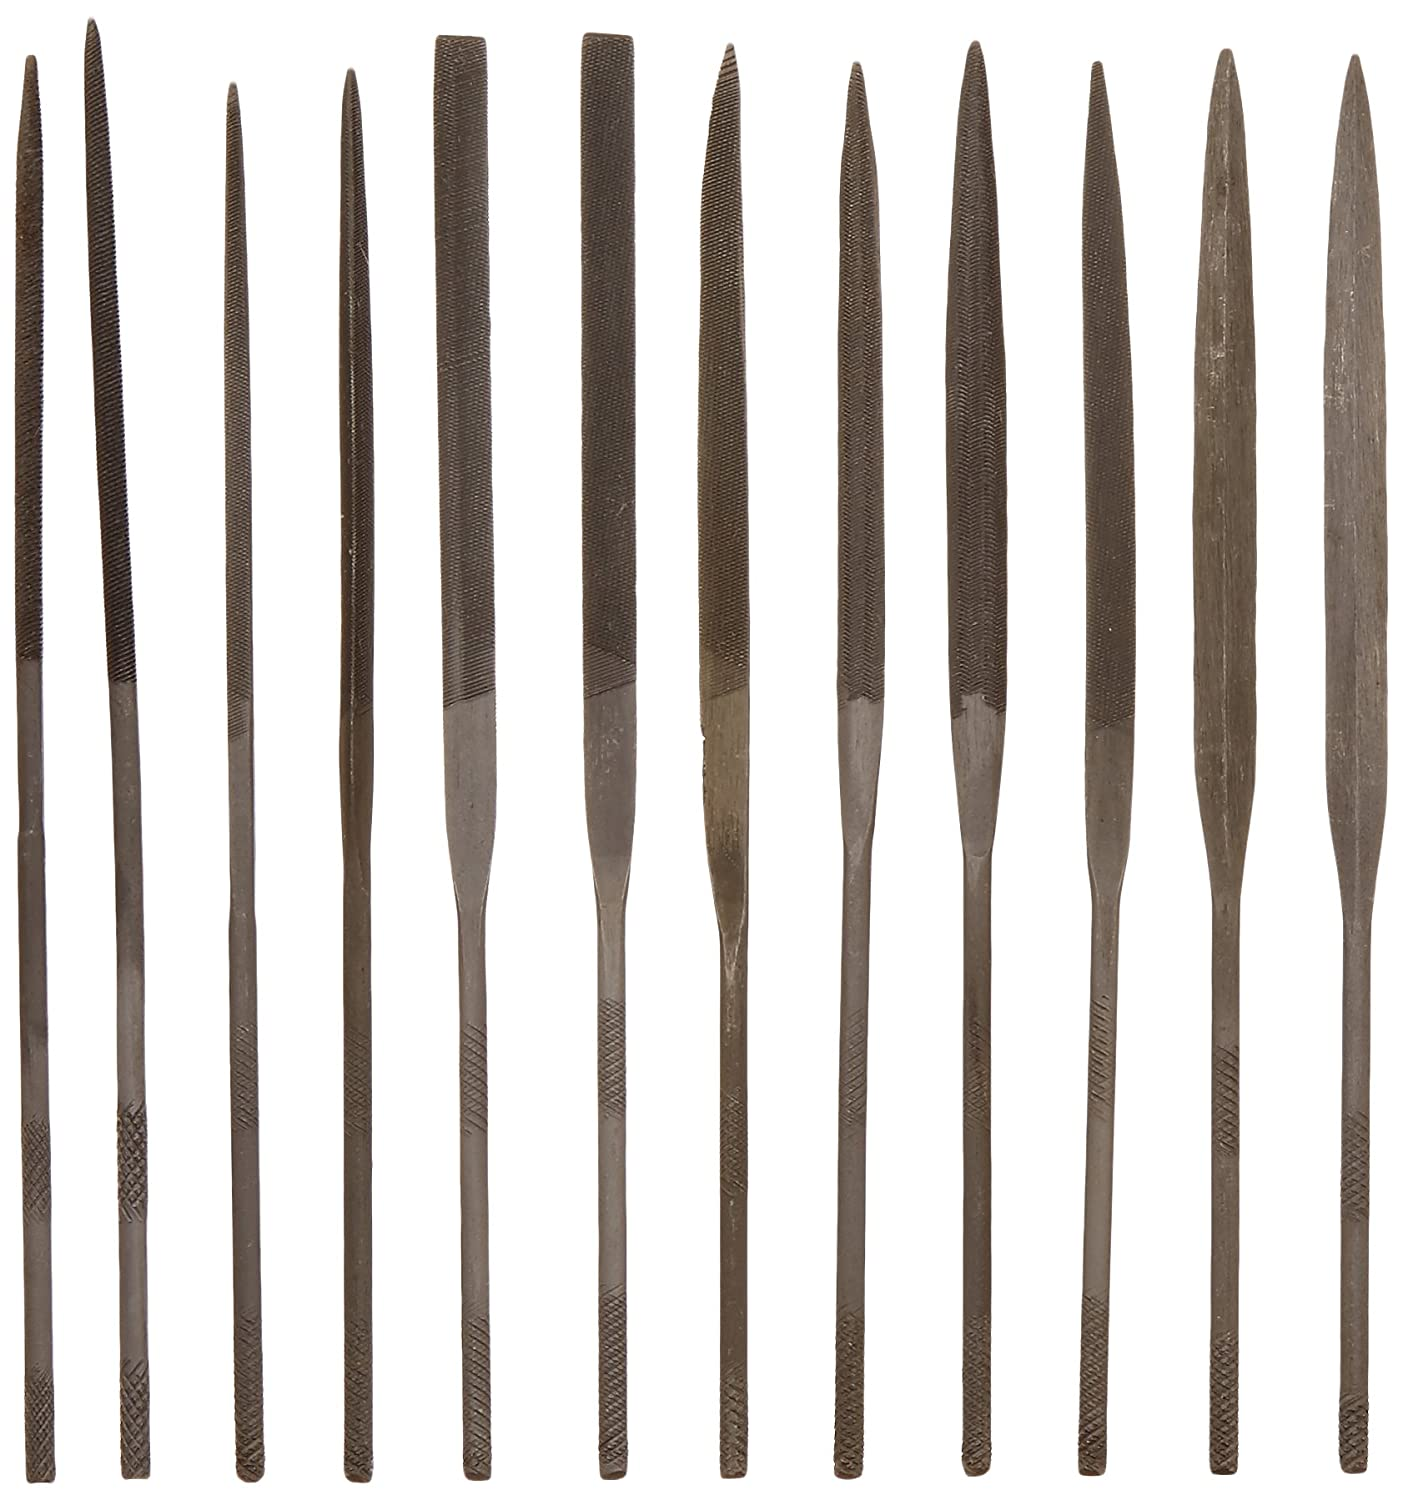 Amazon.com: Needle Files Wire Wrapping, Set of 12: Arts, Crafts & Sewing